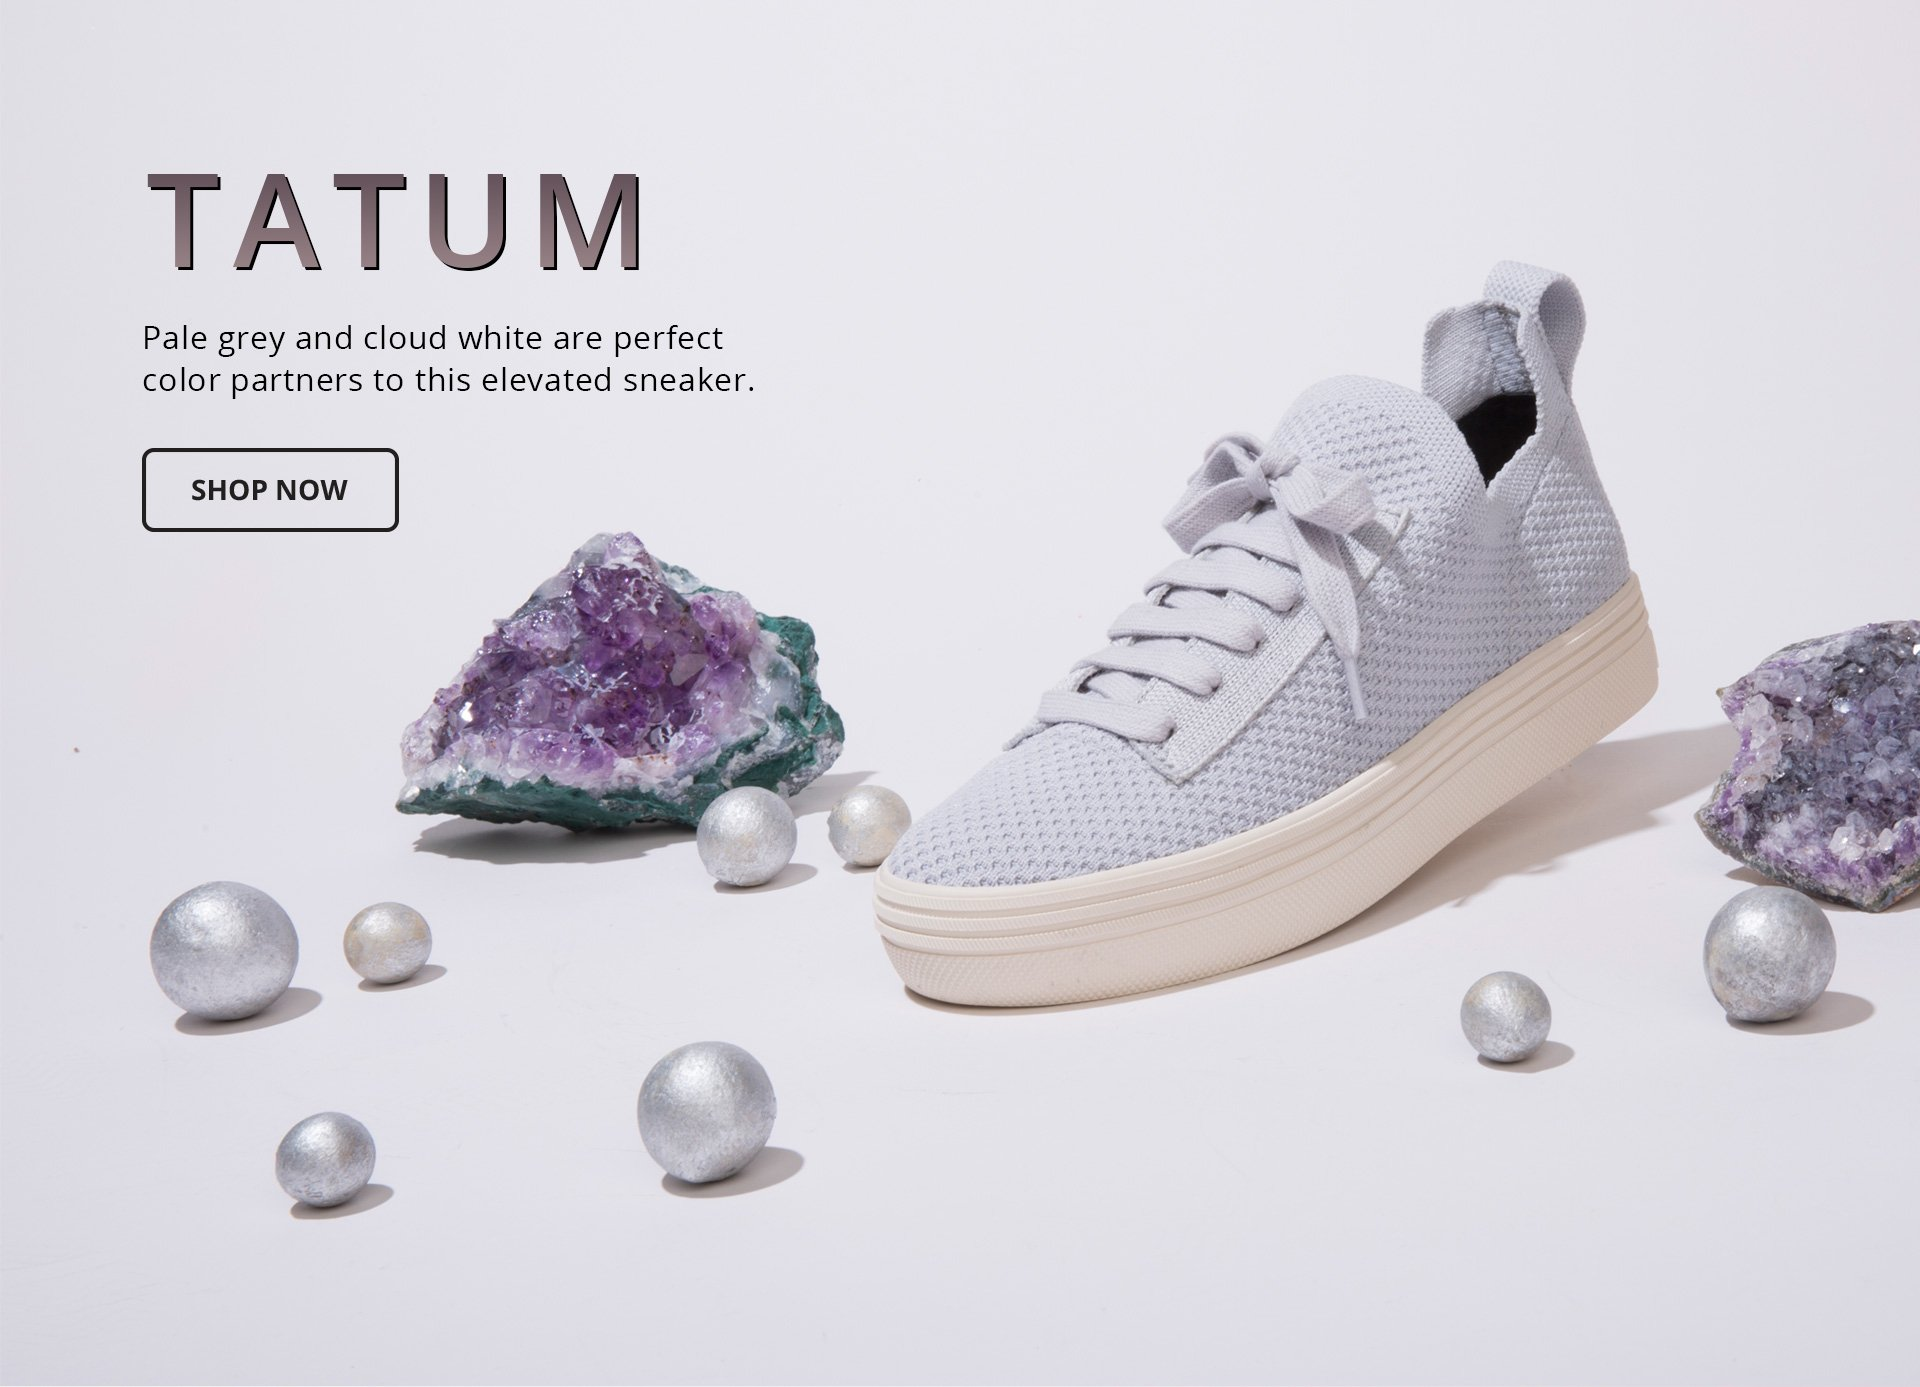 Tatum. Pale grey and cloud white are perfect color partners to this elevated sneaker. Shop Now.